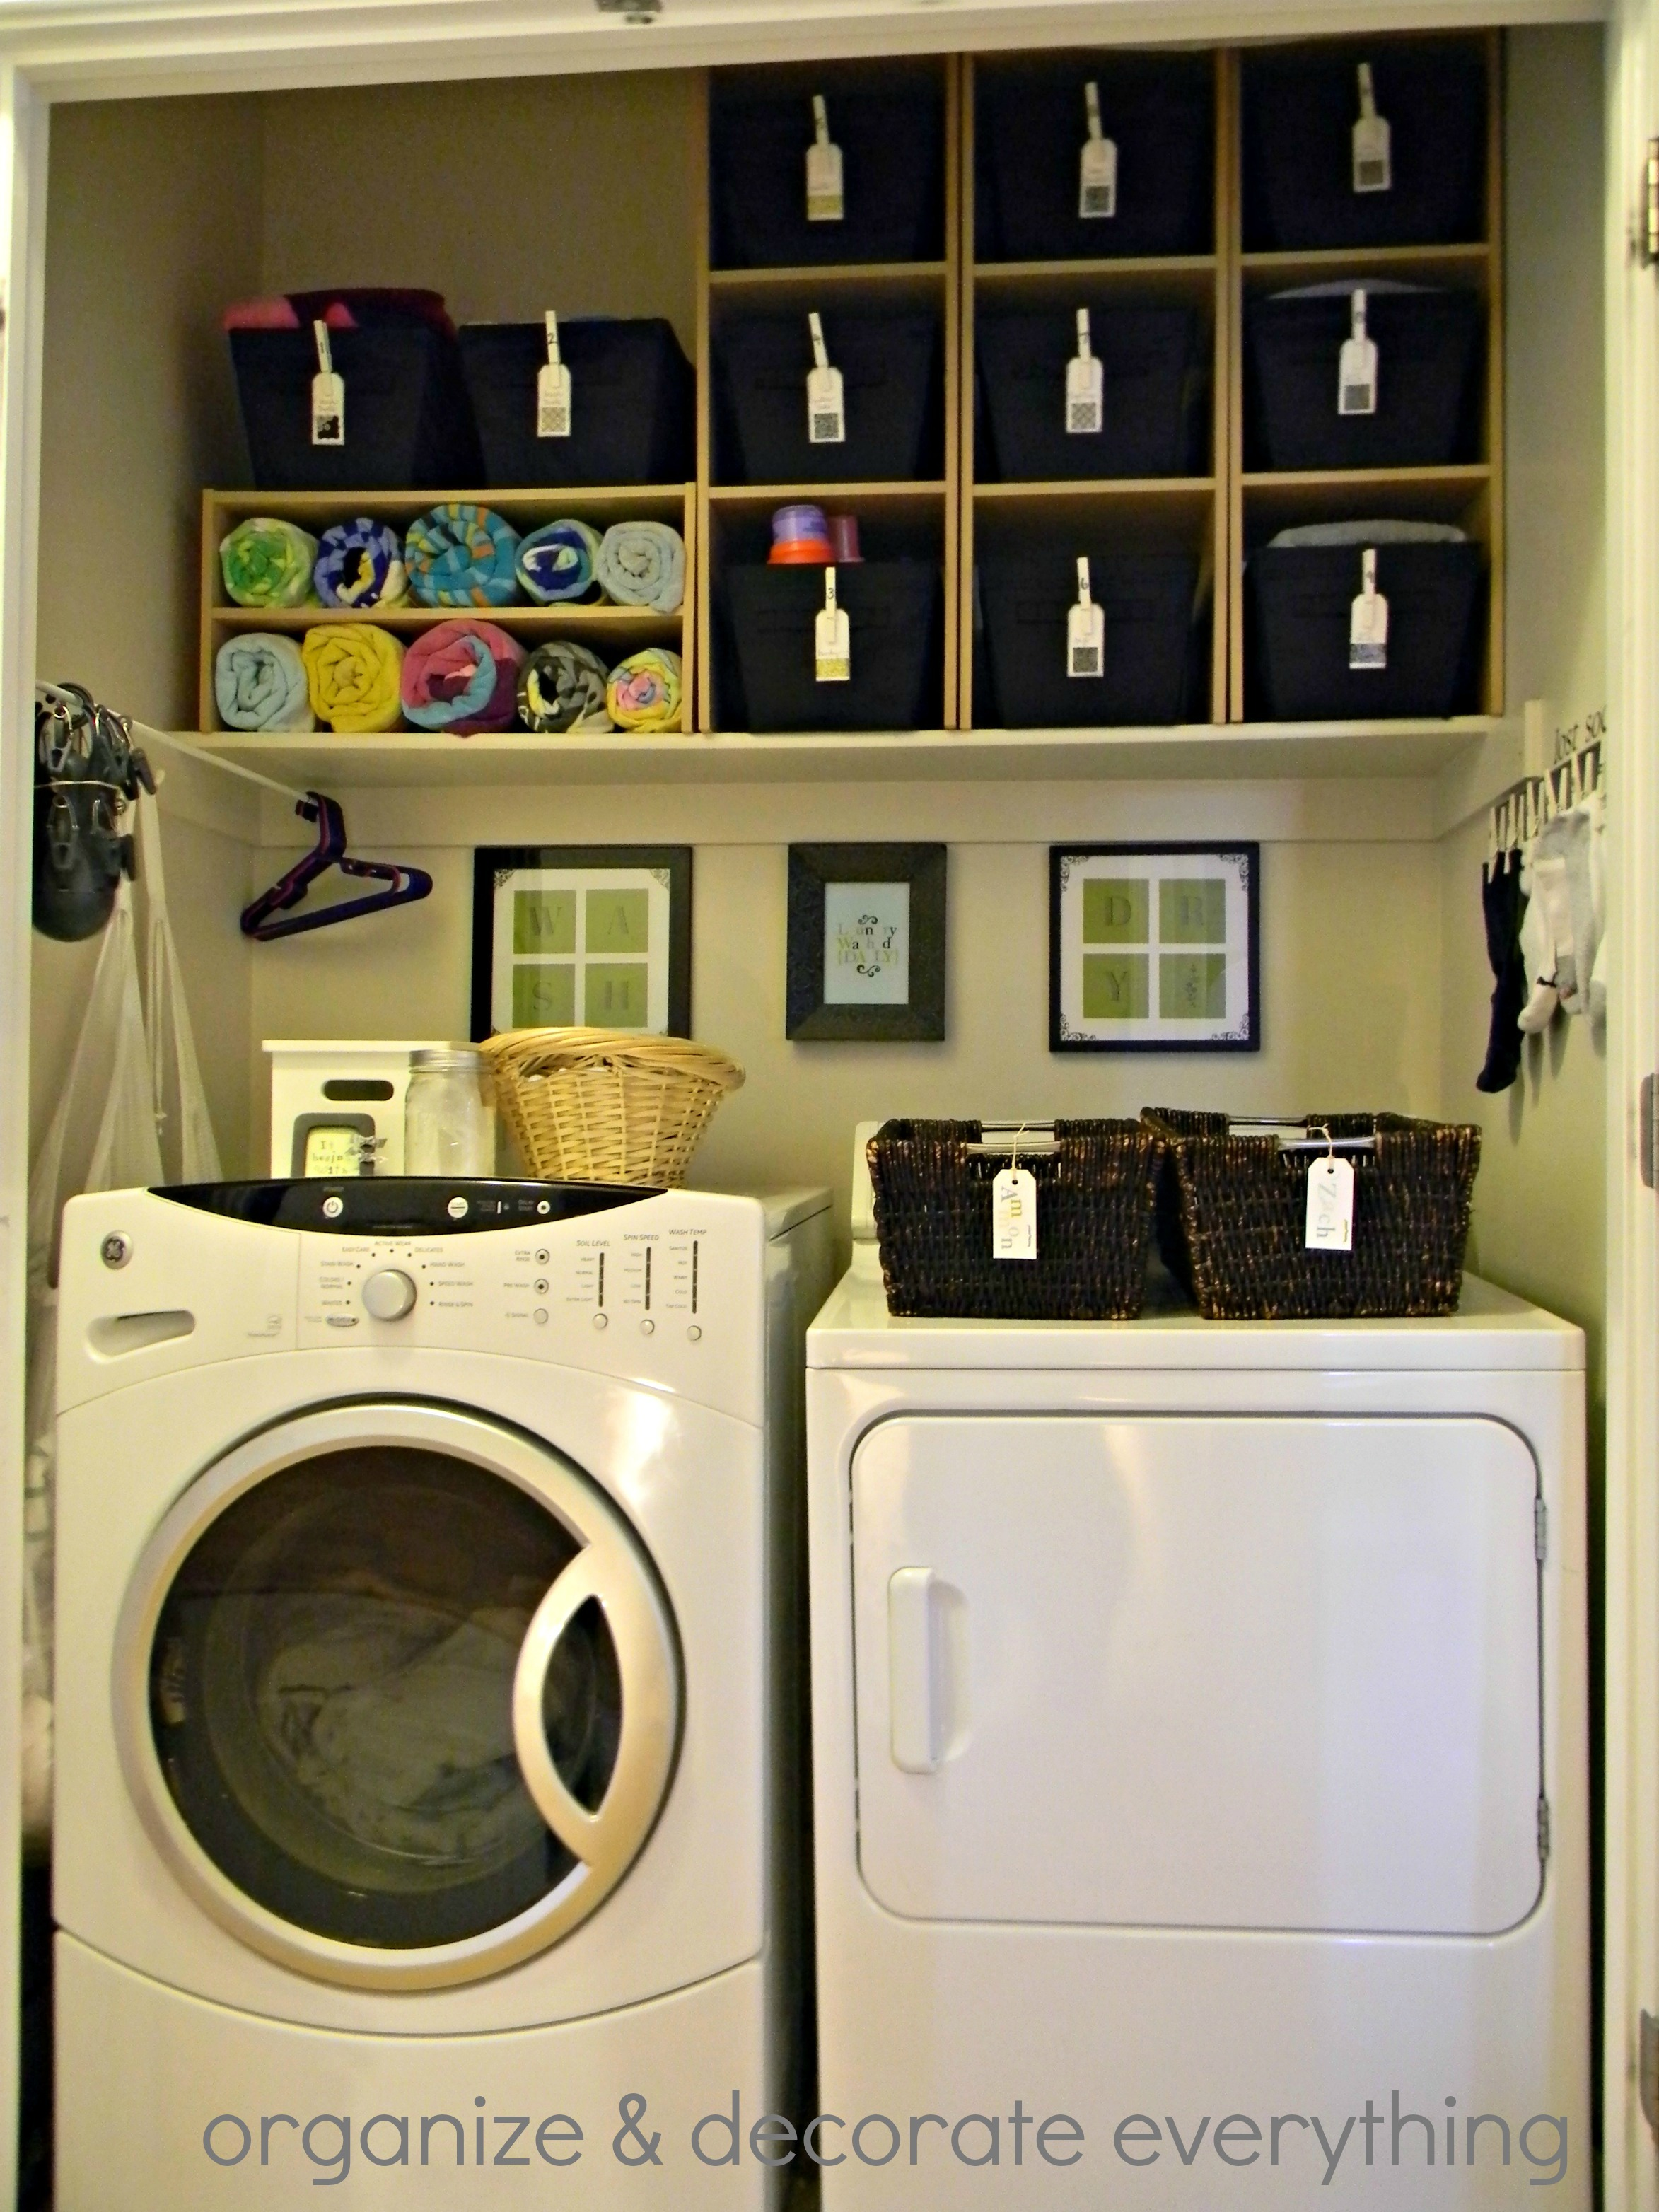 Organized Space Of The Week Laundry Closet A Bowl Full Of Lemons